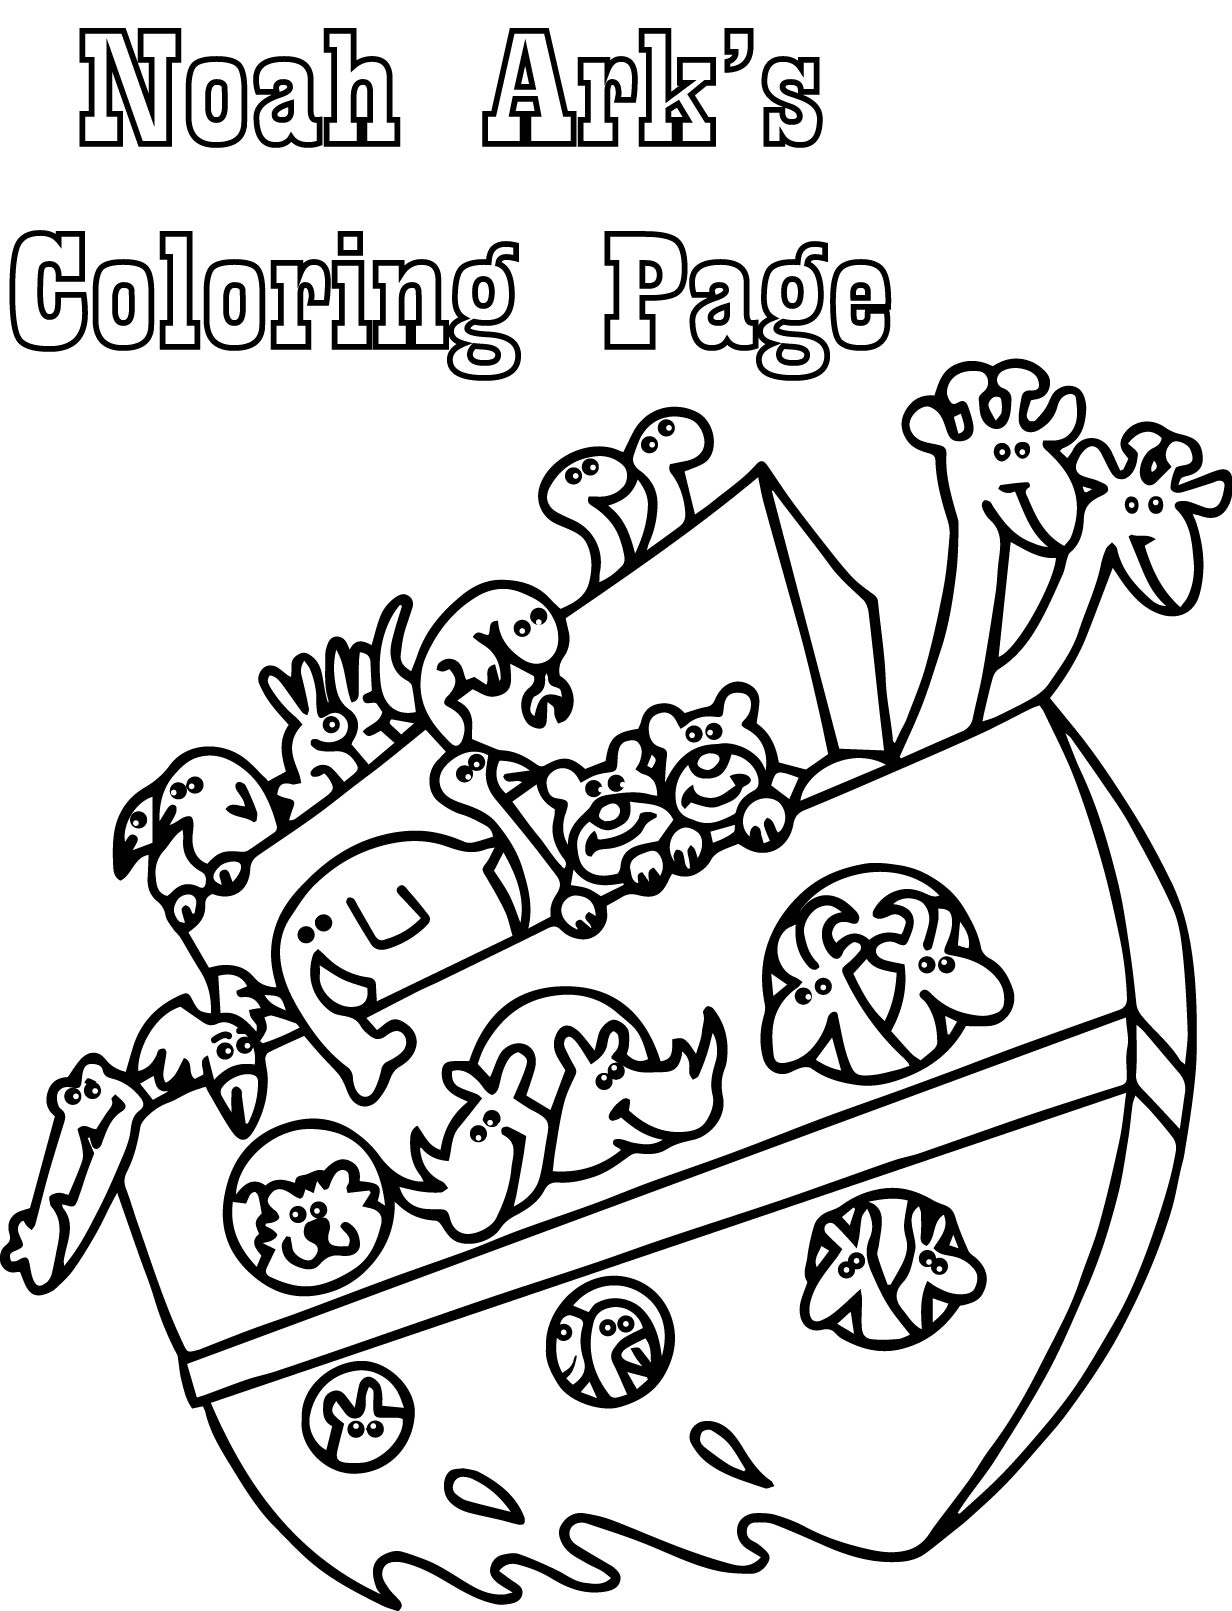 Basic noah ark coloring page for Noah ark coloring page